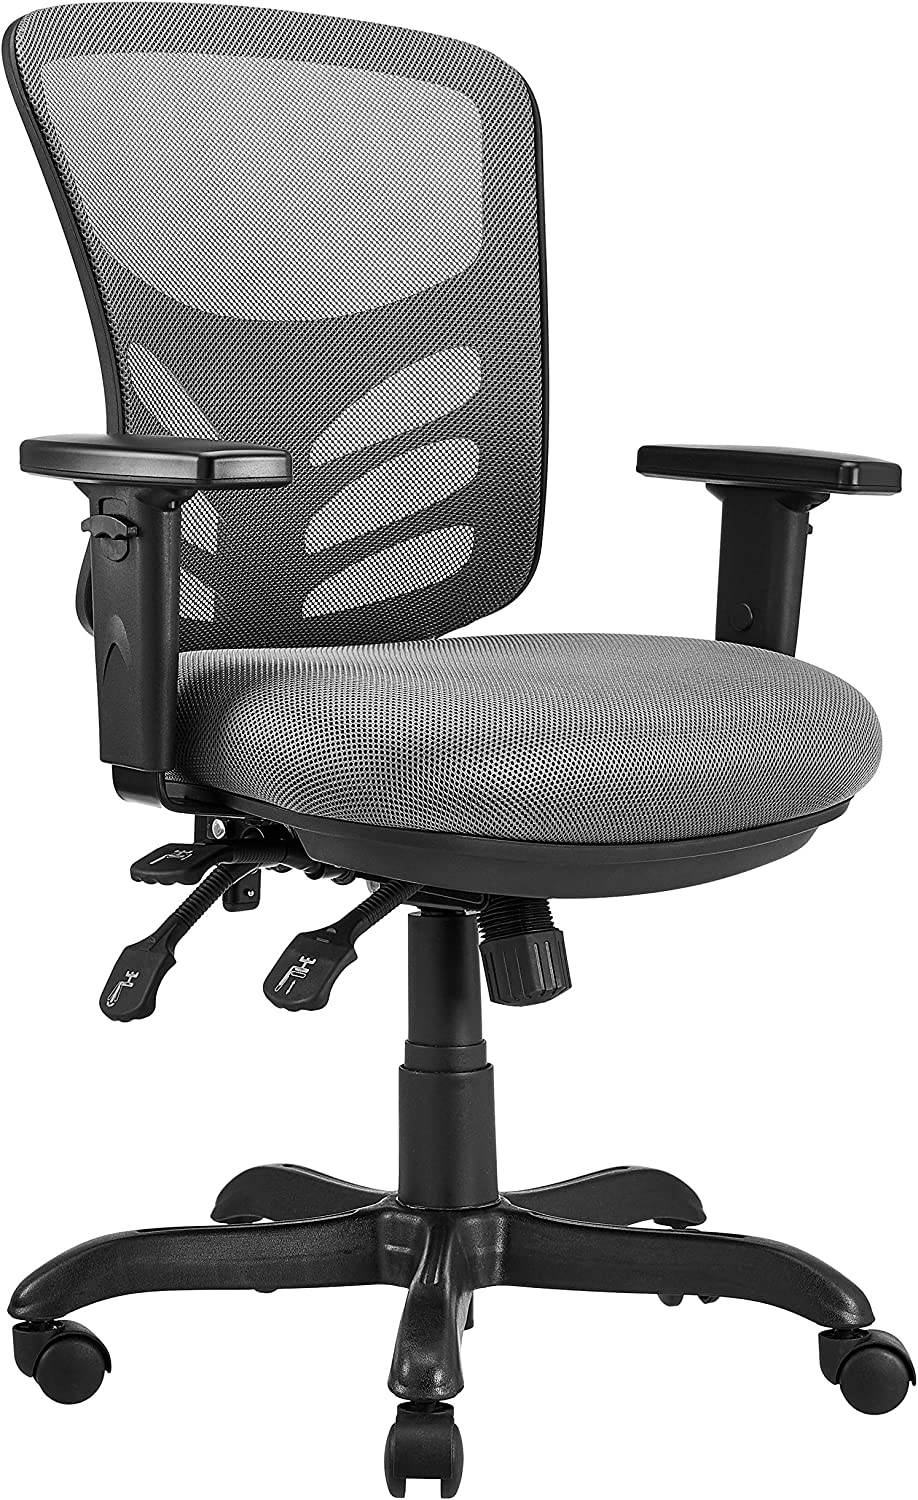 AmazonCommercial Ergonomic Mid-Back Mesh Desk/Computer Chair with Adjustable Seat, Armrests, and Lumbar Support - Grey